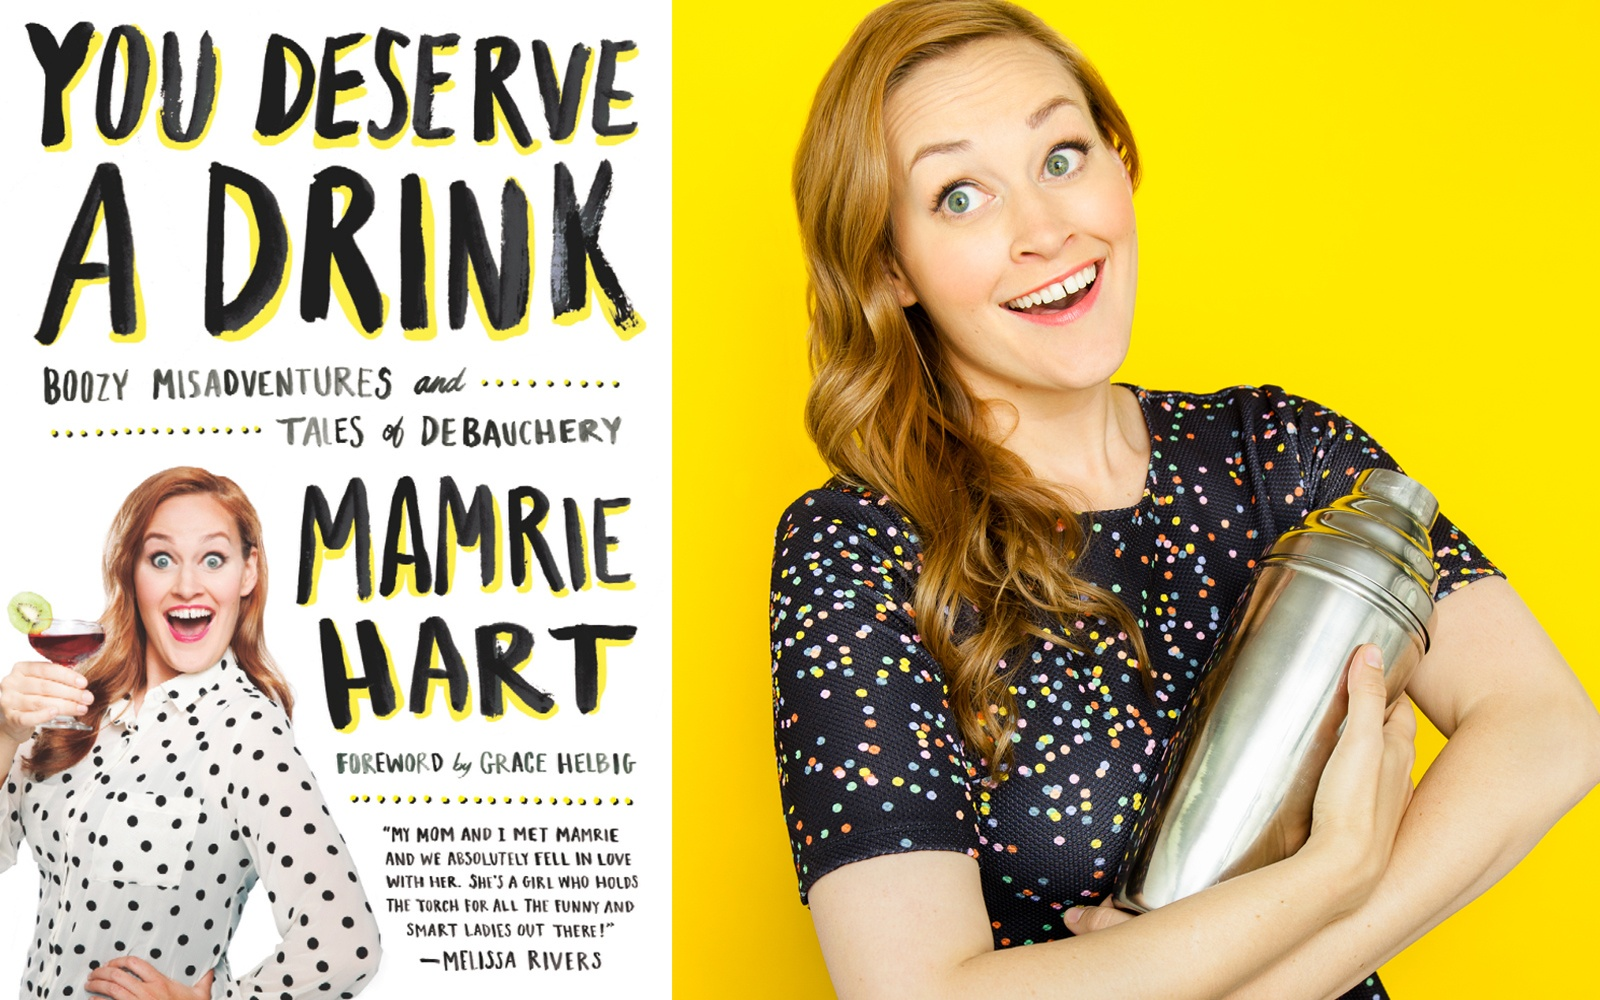 mamrie hart quotesmamrie hart don't trust the b, mamrie hart net worth, mamrie hart daughter, mamrie hart snapchat, mamrie hart instagram, mamrie hart height and weight, mamrie hart, mamrie hart book, mamrie hart merch, mamrie hart twitter, mamrie hart tumblr, mamrie hart youtube, mamrie hart dog, mamrie hart vegan, mamrie hart beanz, mamrie hart lazy boy, mamrie hart imdb, mamrie hart you deserve a drink, mamrie hart seth keal, mamrie hart quotes